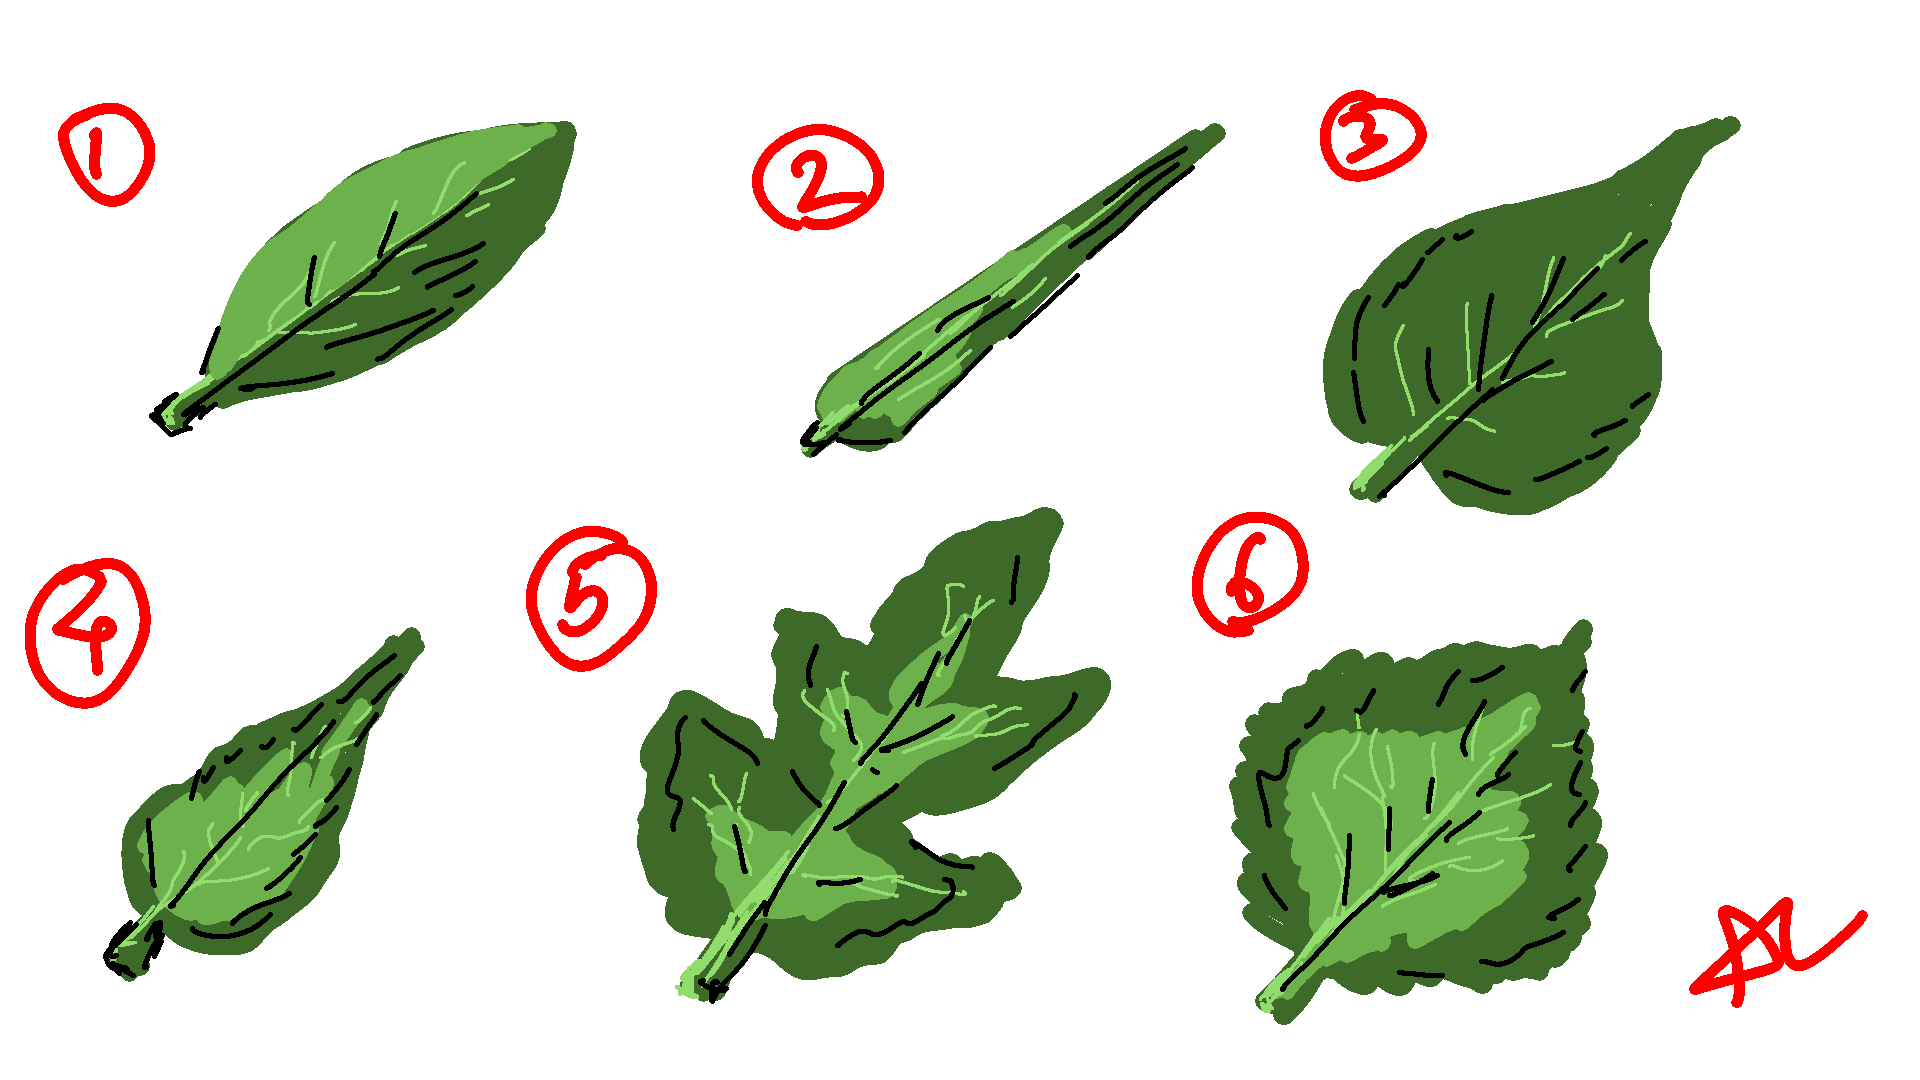 005_Leaves.png